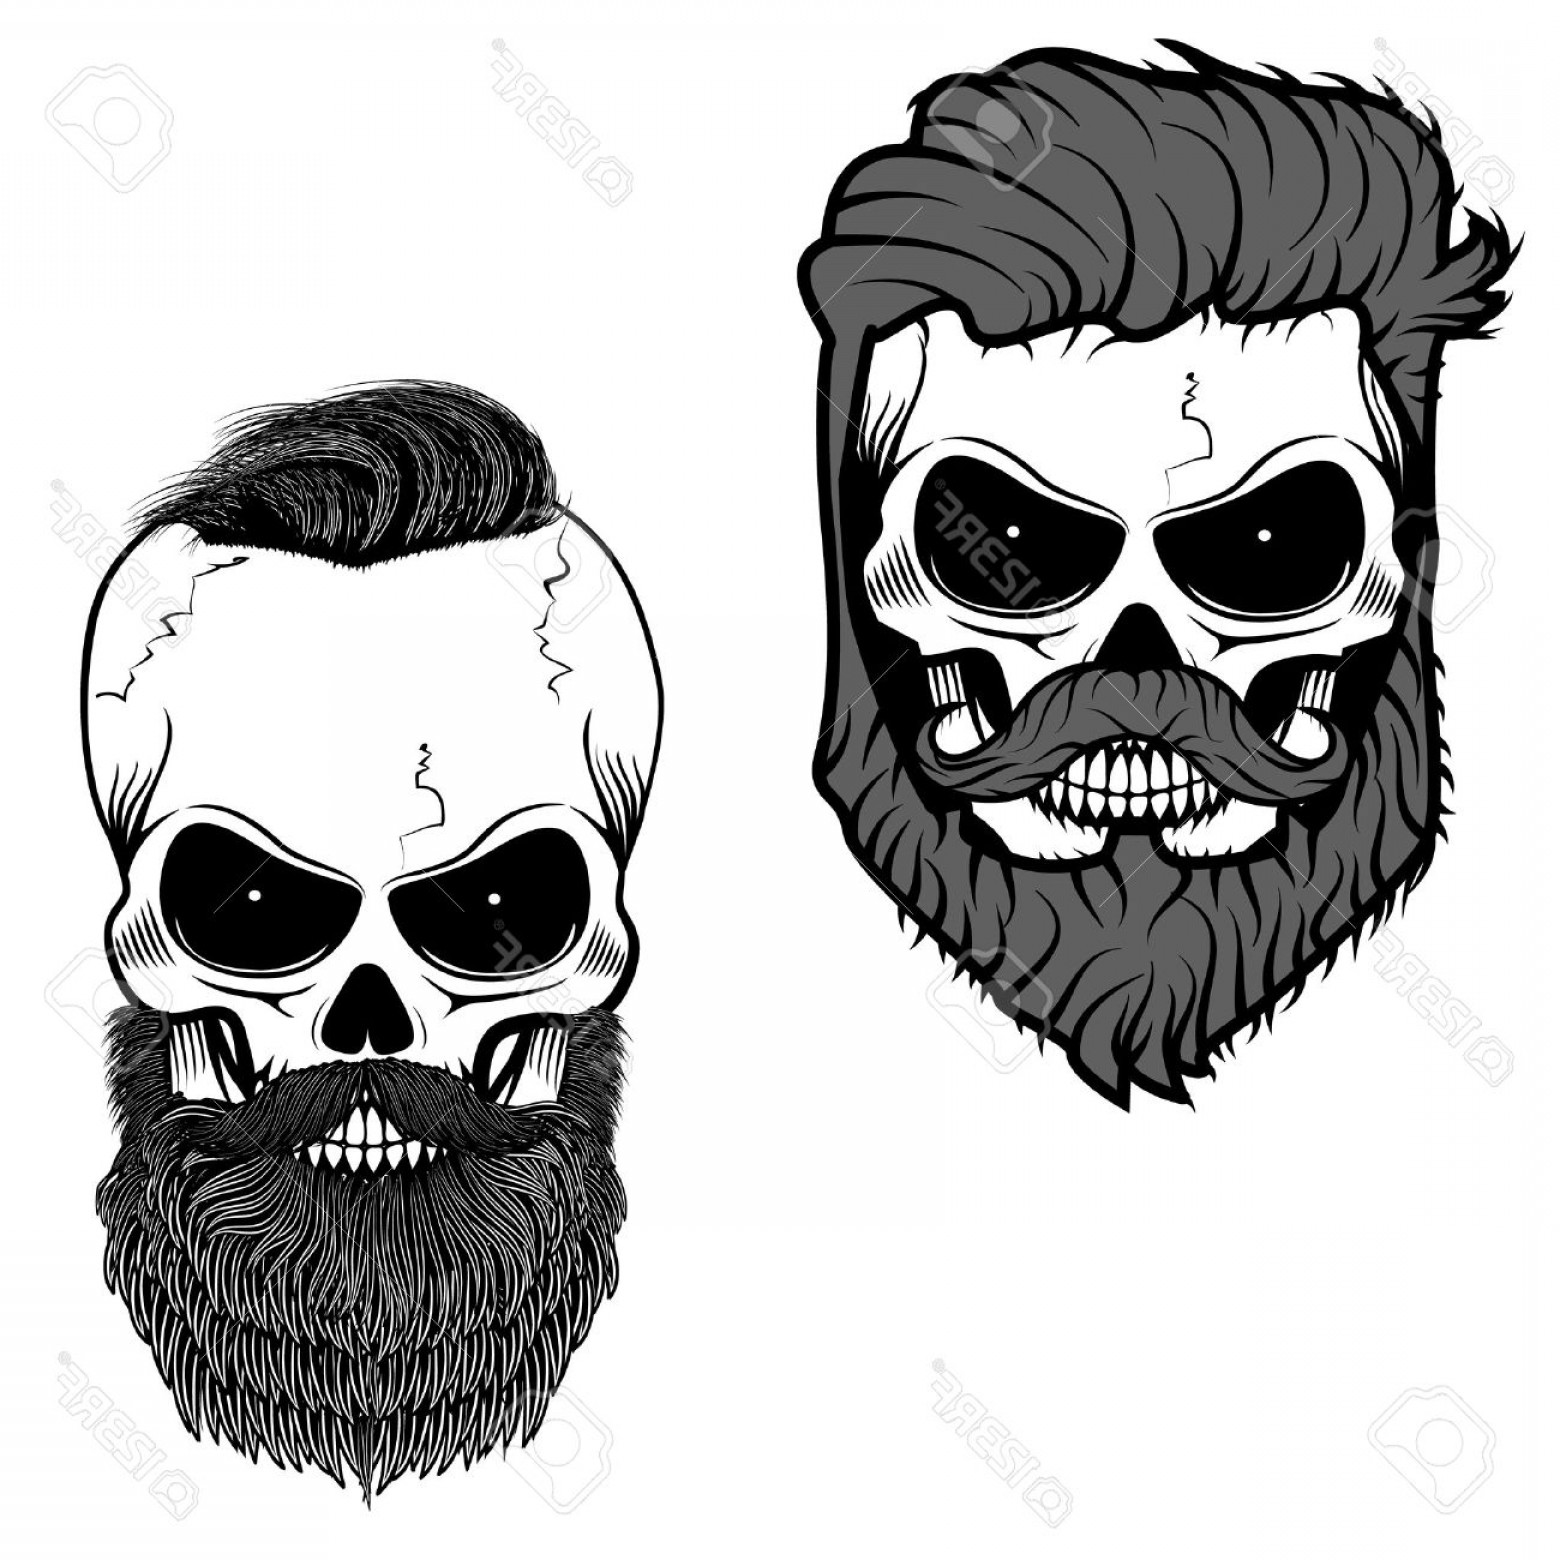 Fear The Beard Vector: Photostock Vector Bearded Skull Sugar Skull With Beard Day Of Death Vector Illustration